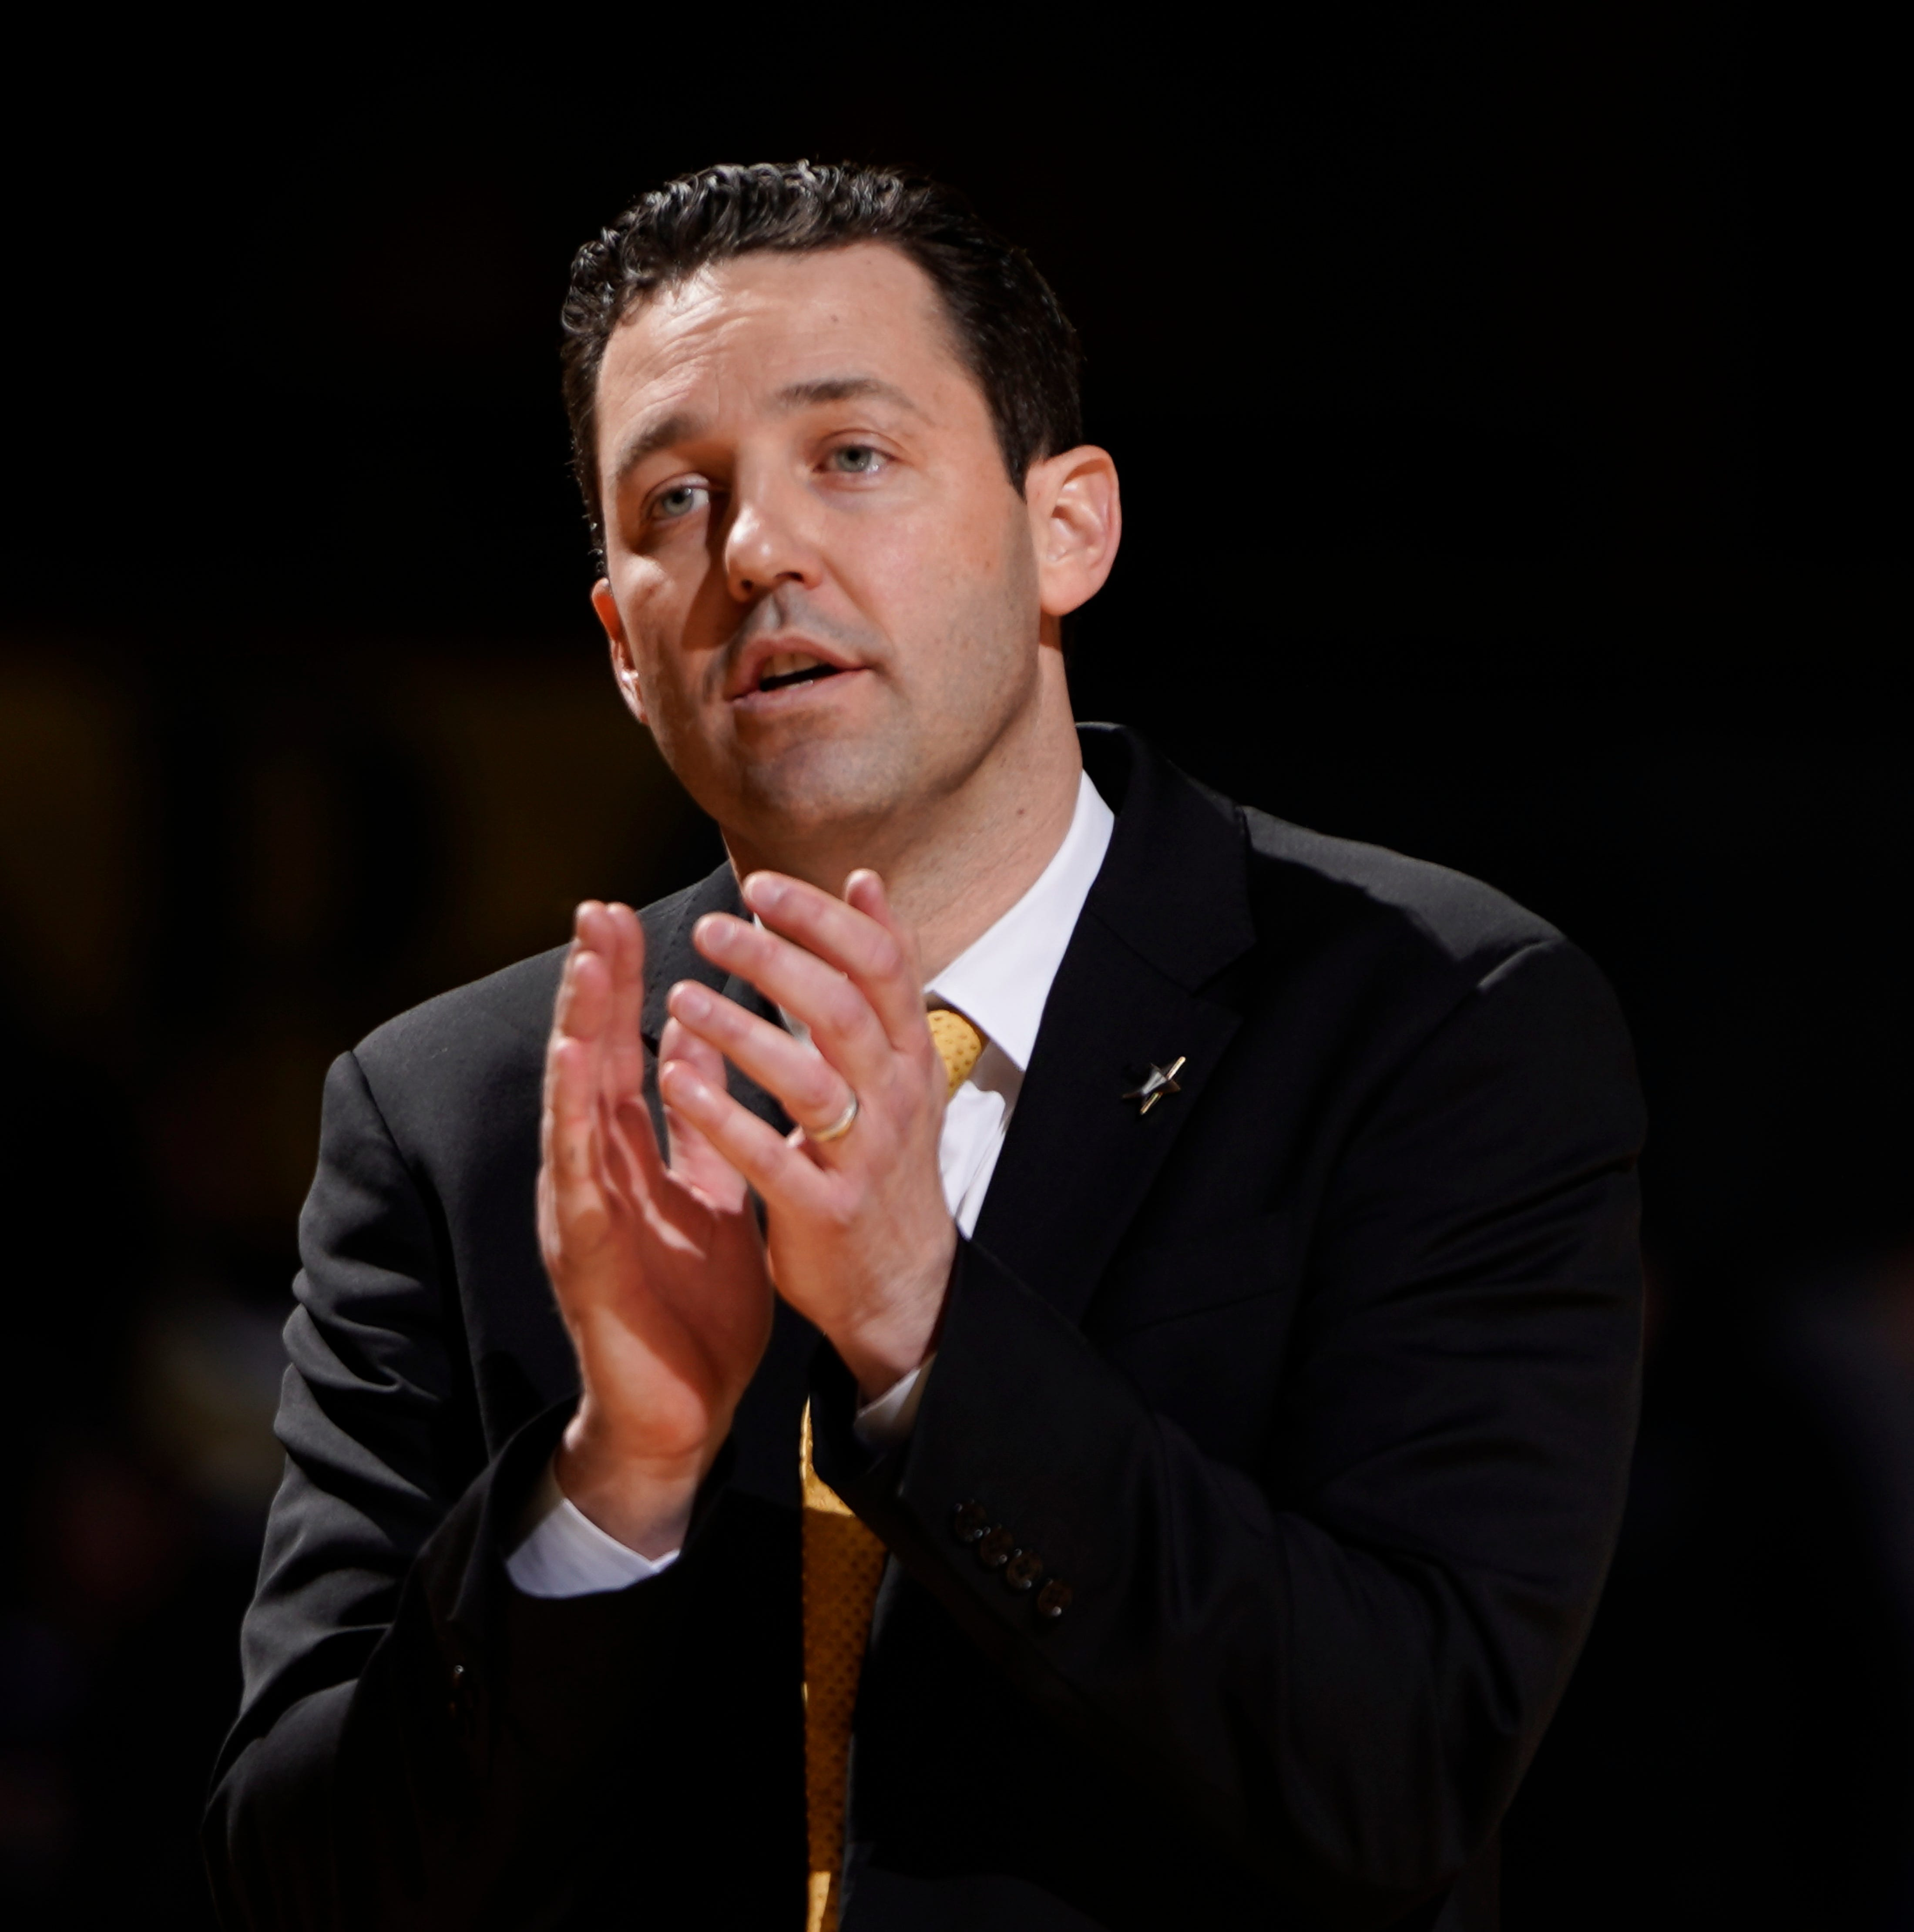 Bryce Drew leads Vanderbilt basketball to worst season ever, so why would next year be better?